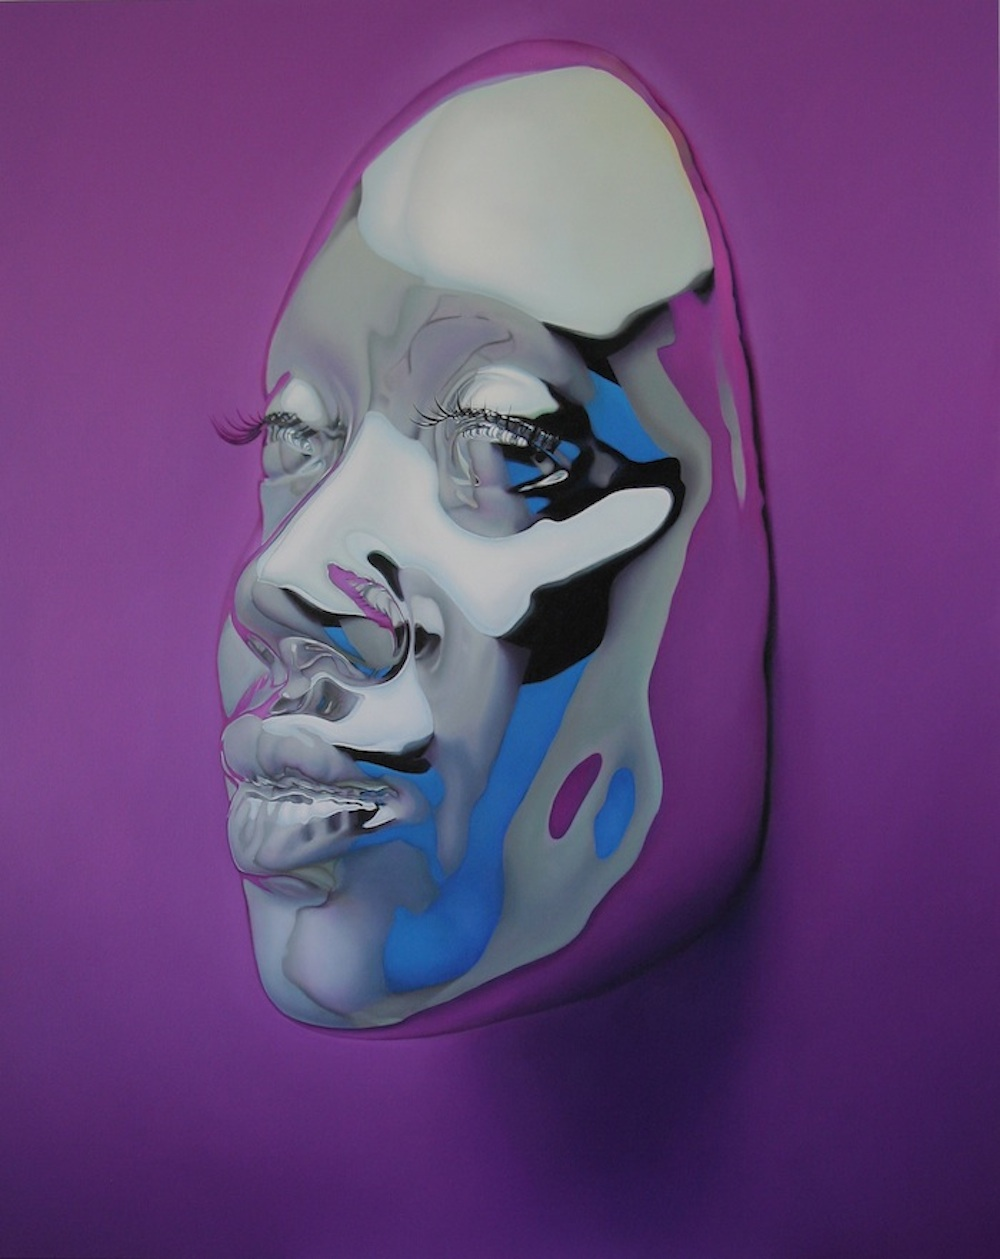 Hyperrealistic oil paintings of vivid chrome masks by kip omolade